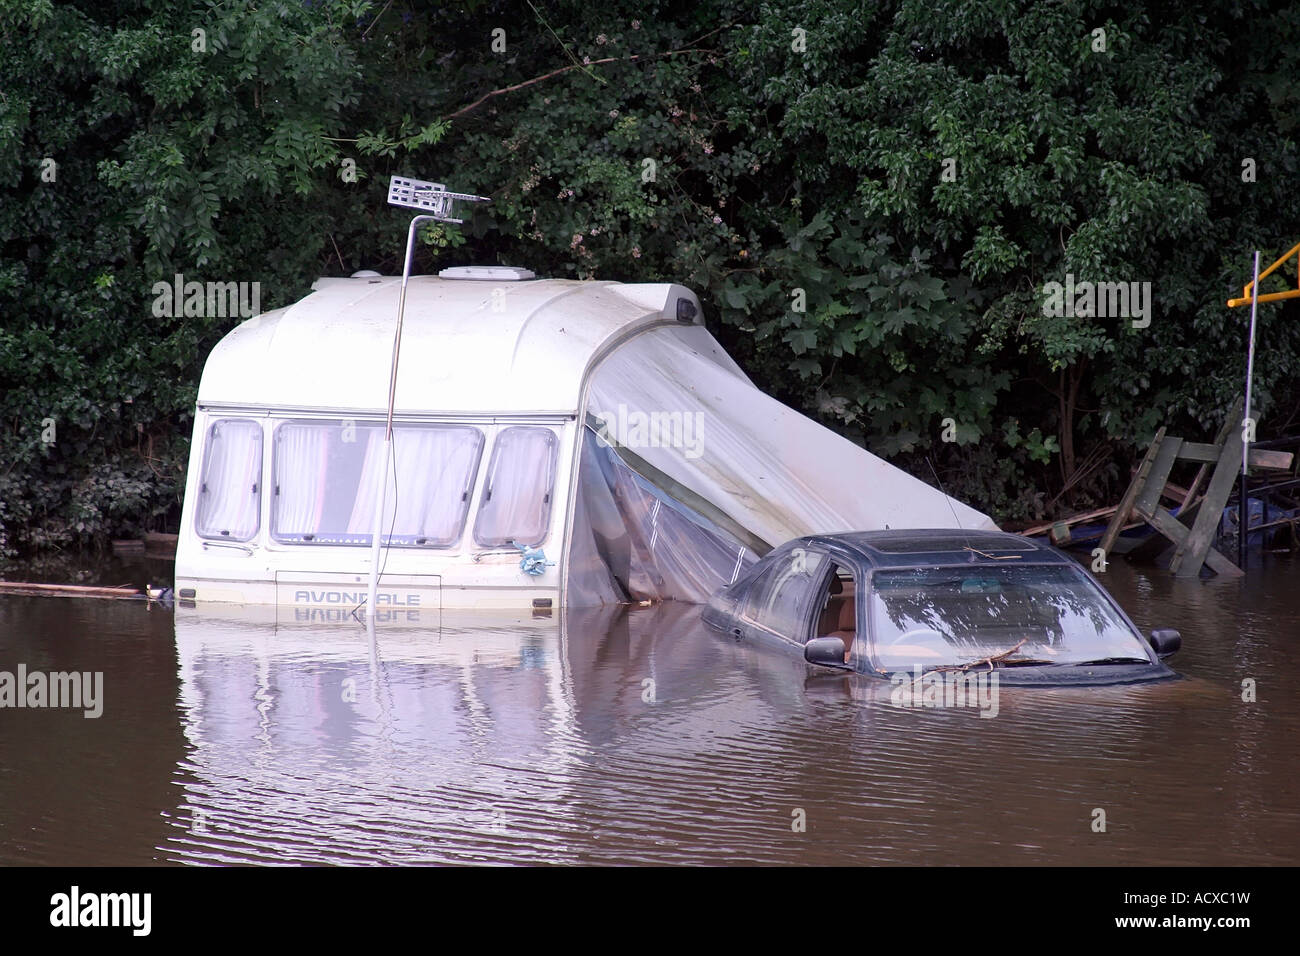 Caravan and car in flooded site at Upton Upon Severn Worcestershire during floods of July 2007 - Stock Image